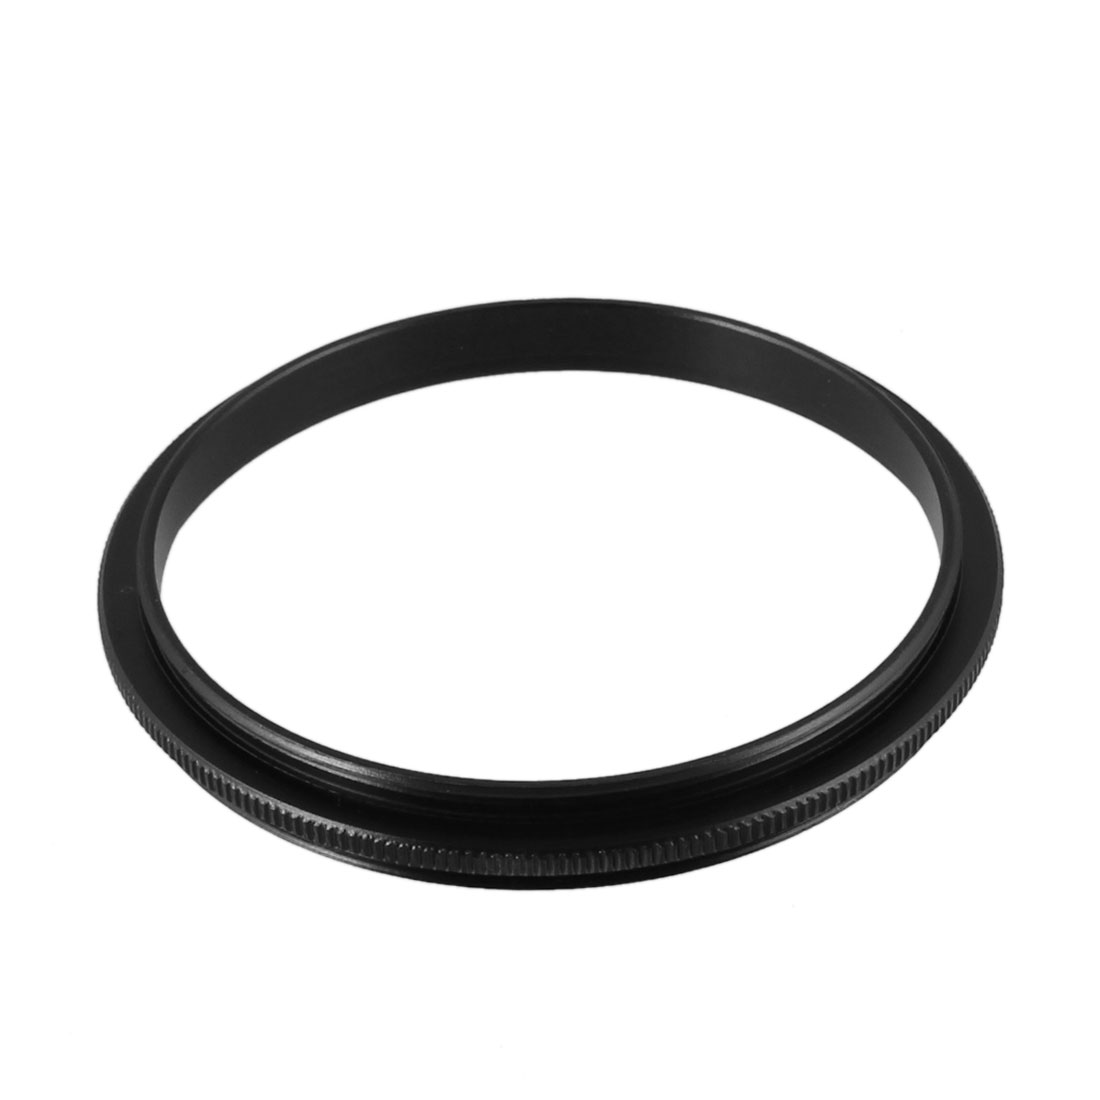 55mm-58mm 55mm to 58mm Male to Male Step up Ring Adapter Black for Camera - image 1 of 1